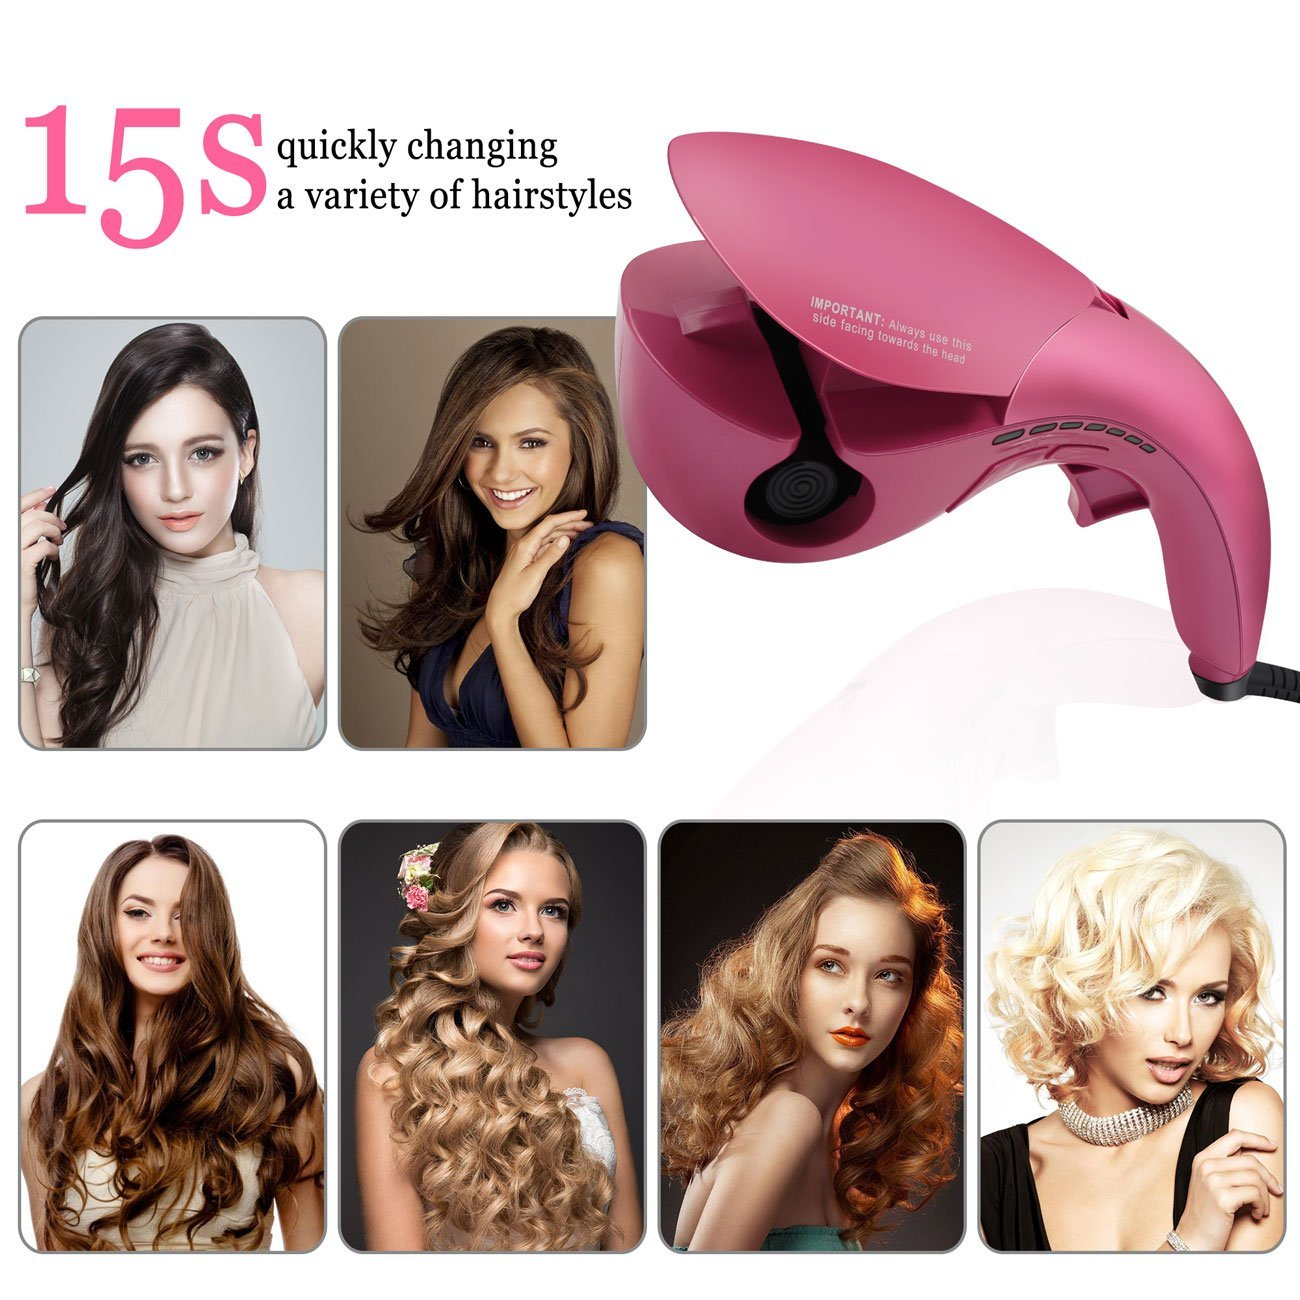 mermaid magic ceramic luxury automatic curler rolling automatic curling wand rotating hair curling iron